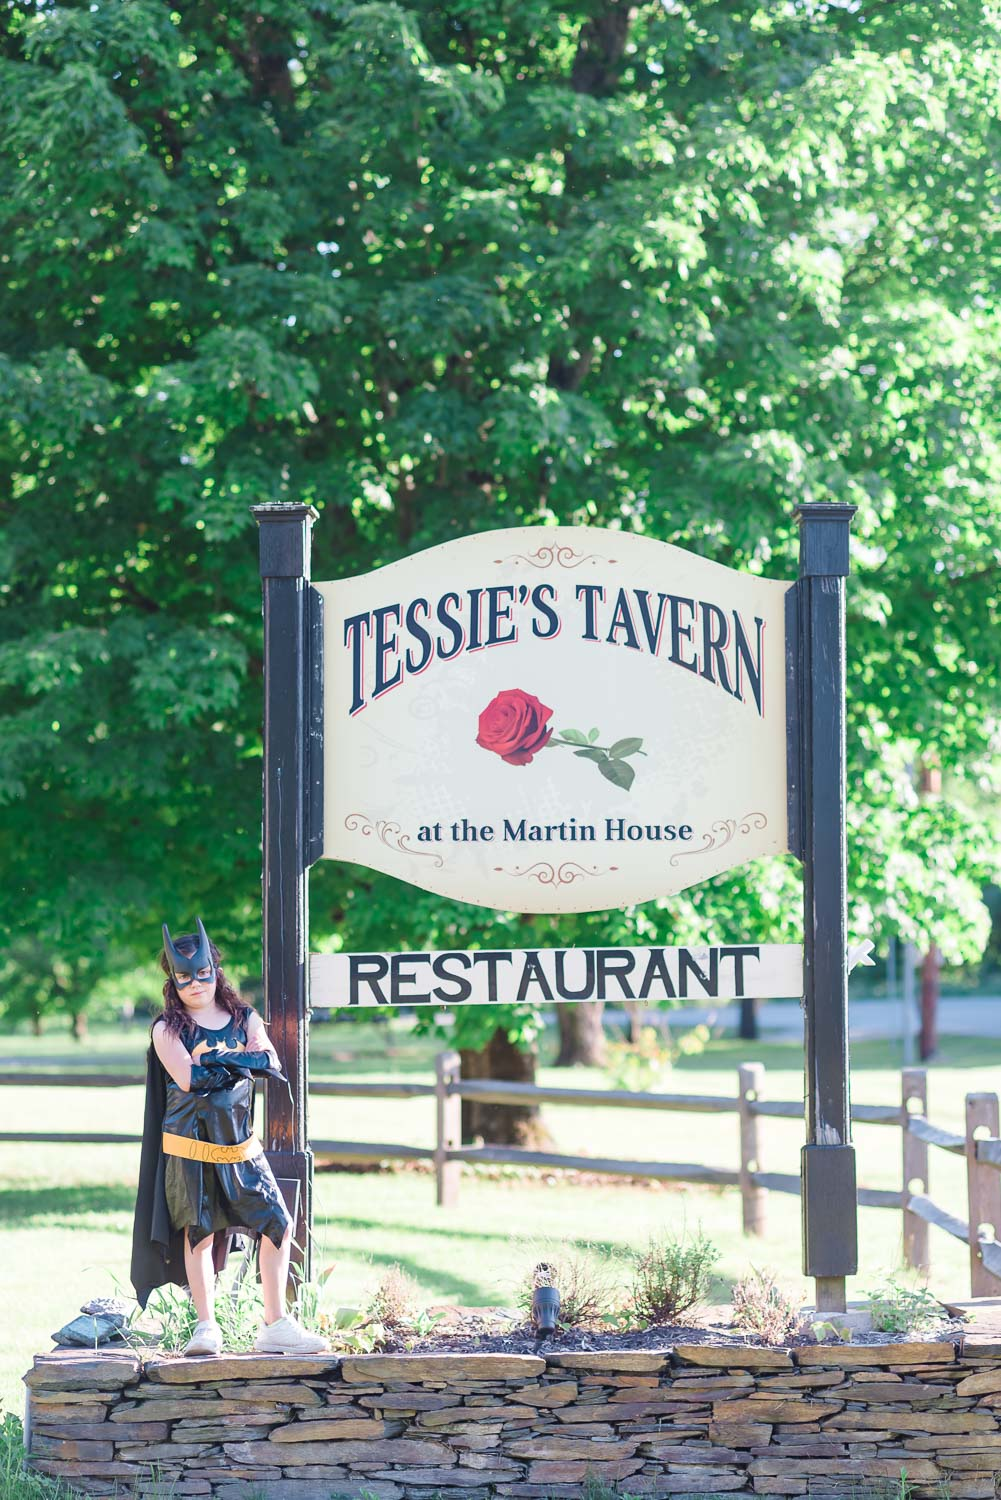 a small child in a batman costume standing next to the Tessie's Tavern sign on route 107 in Vermont